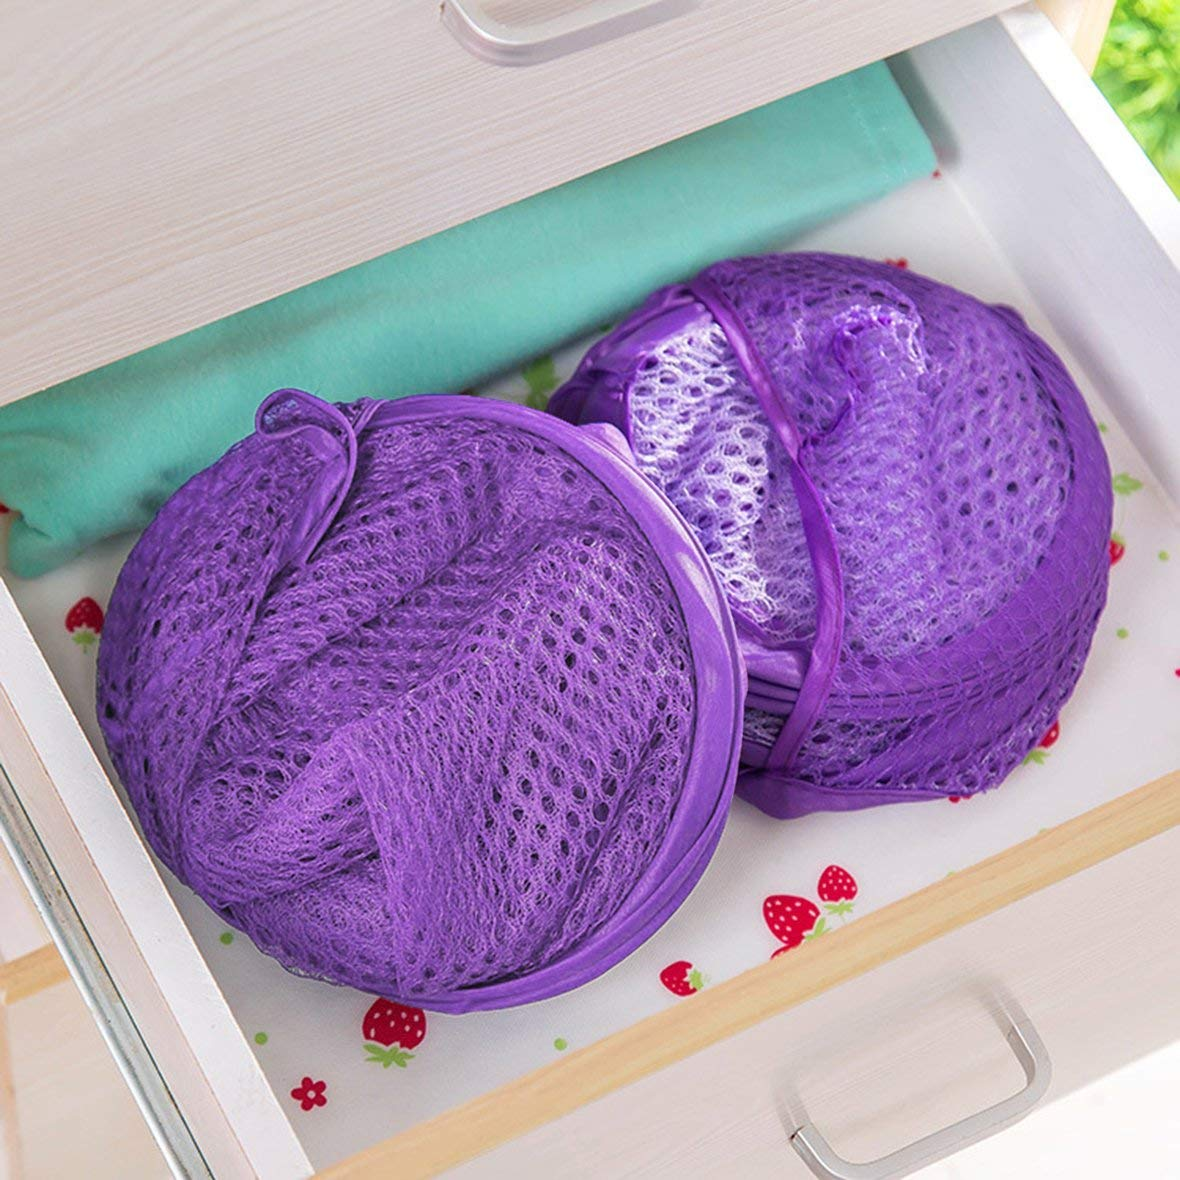 Tivolii Foldable Practical Pop Up Washing Clothes Laundry Basket Solid Color Mesh Dirty Clothes Storage Basket Bag for Home